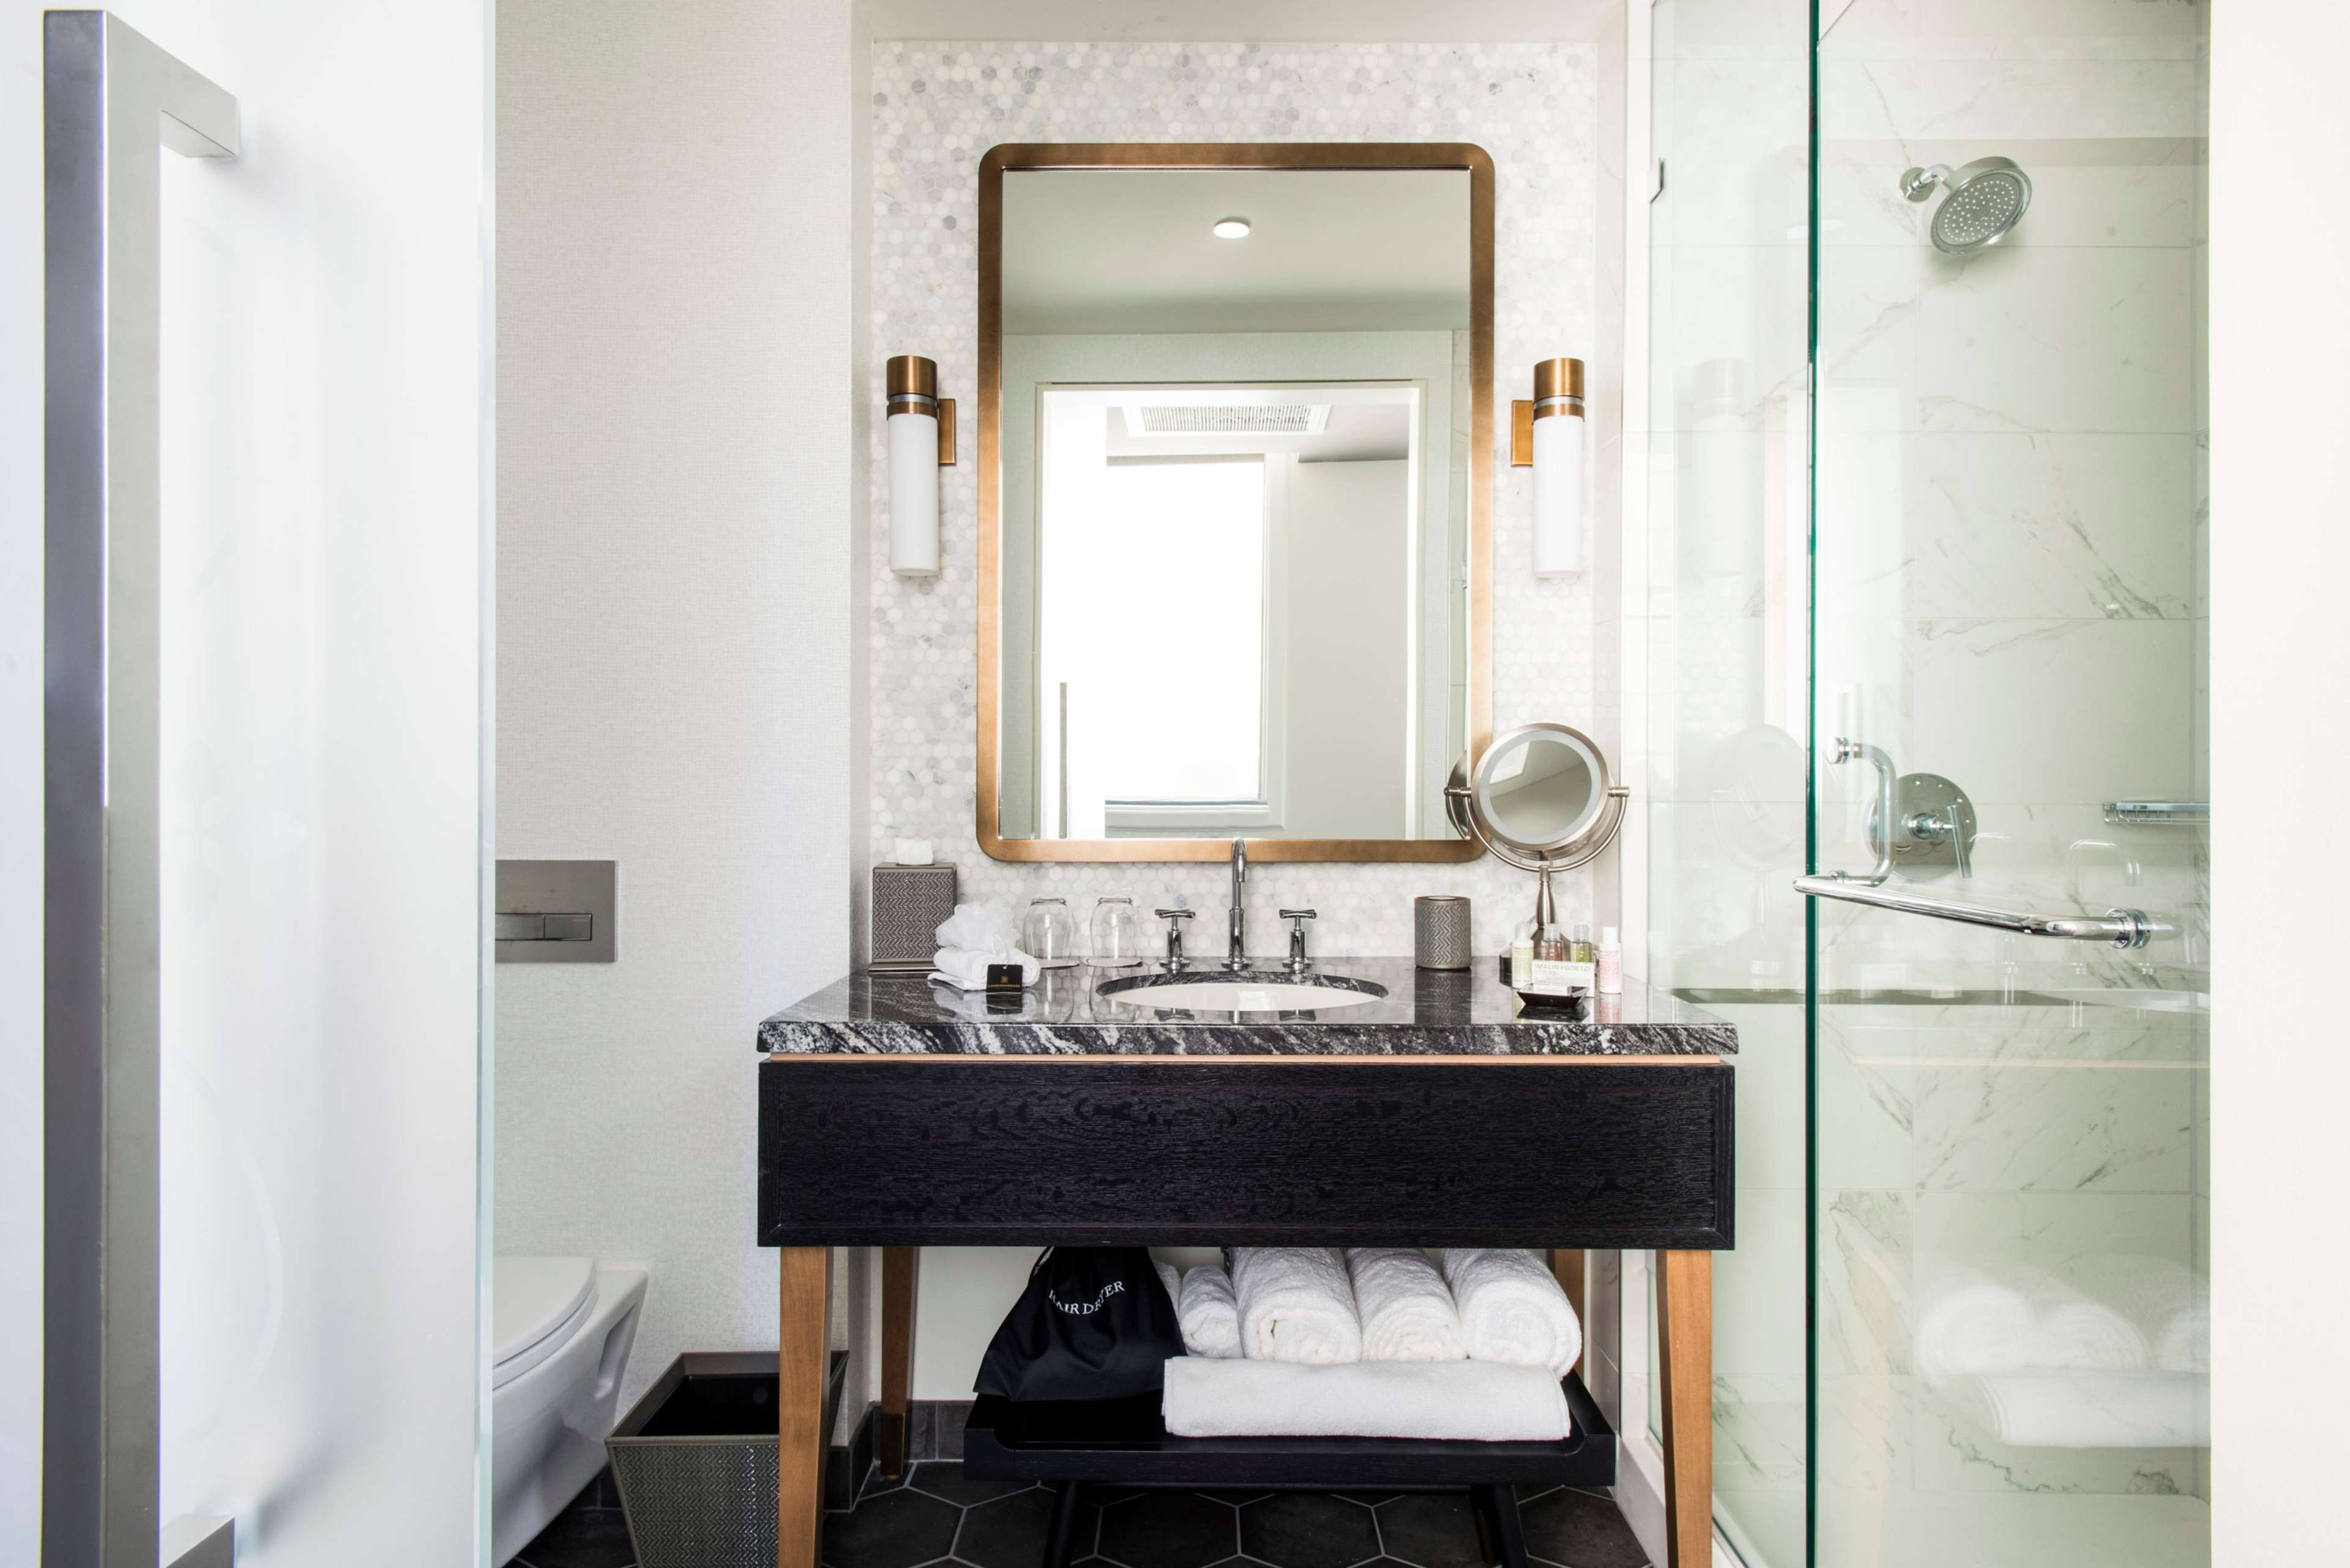 LondonHouse Chicago, Curio Collection by Hilton image 21